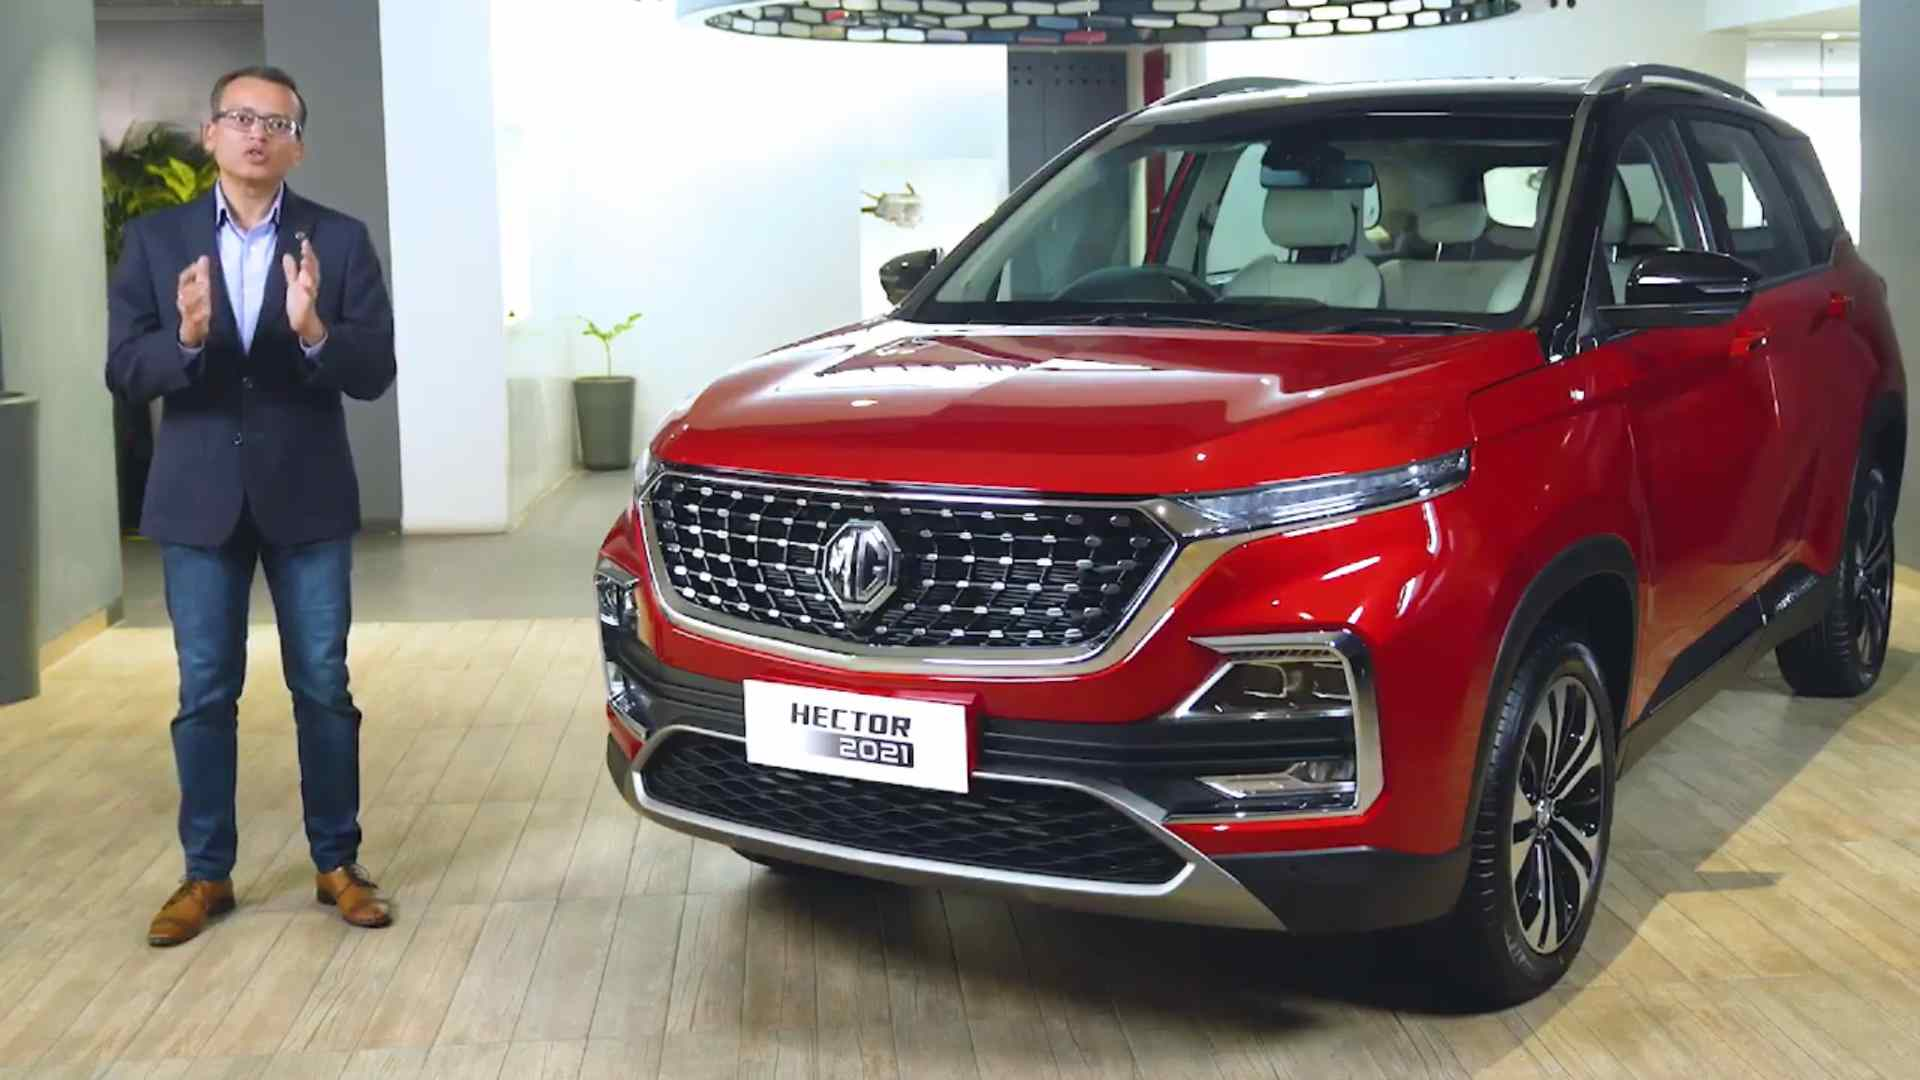 MG Hector CVT is priced in India starting Rs 16.52 lakh